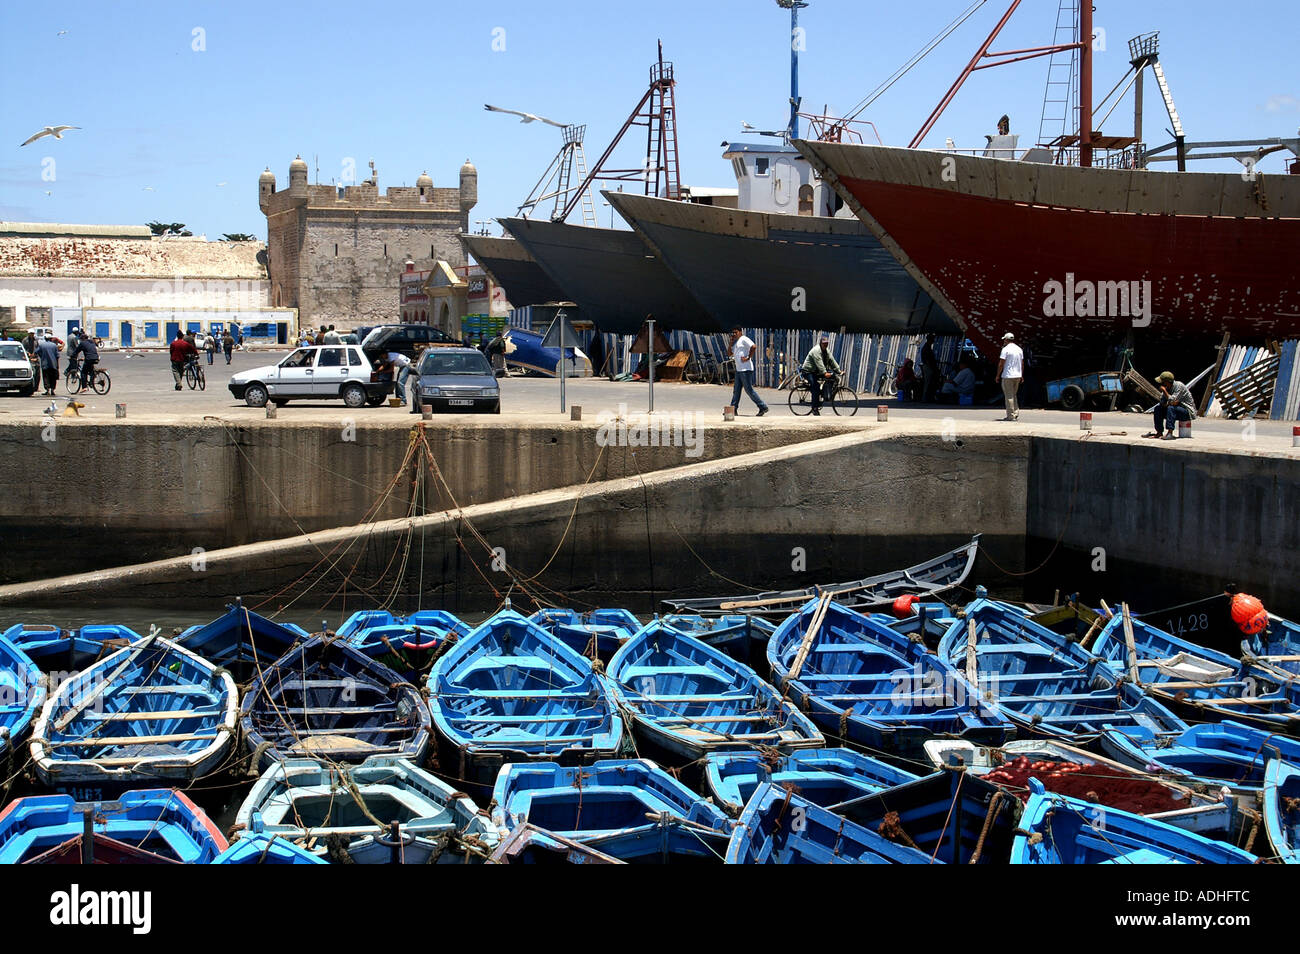 Fishing gear by Turret Sqala du Port on ramparts by port of Essaouira Morocco - Stock Image